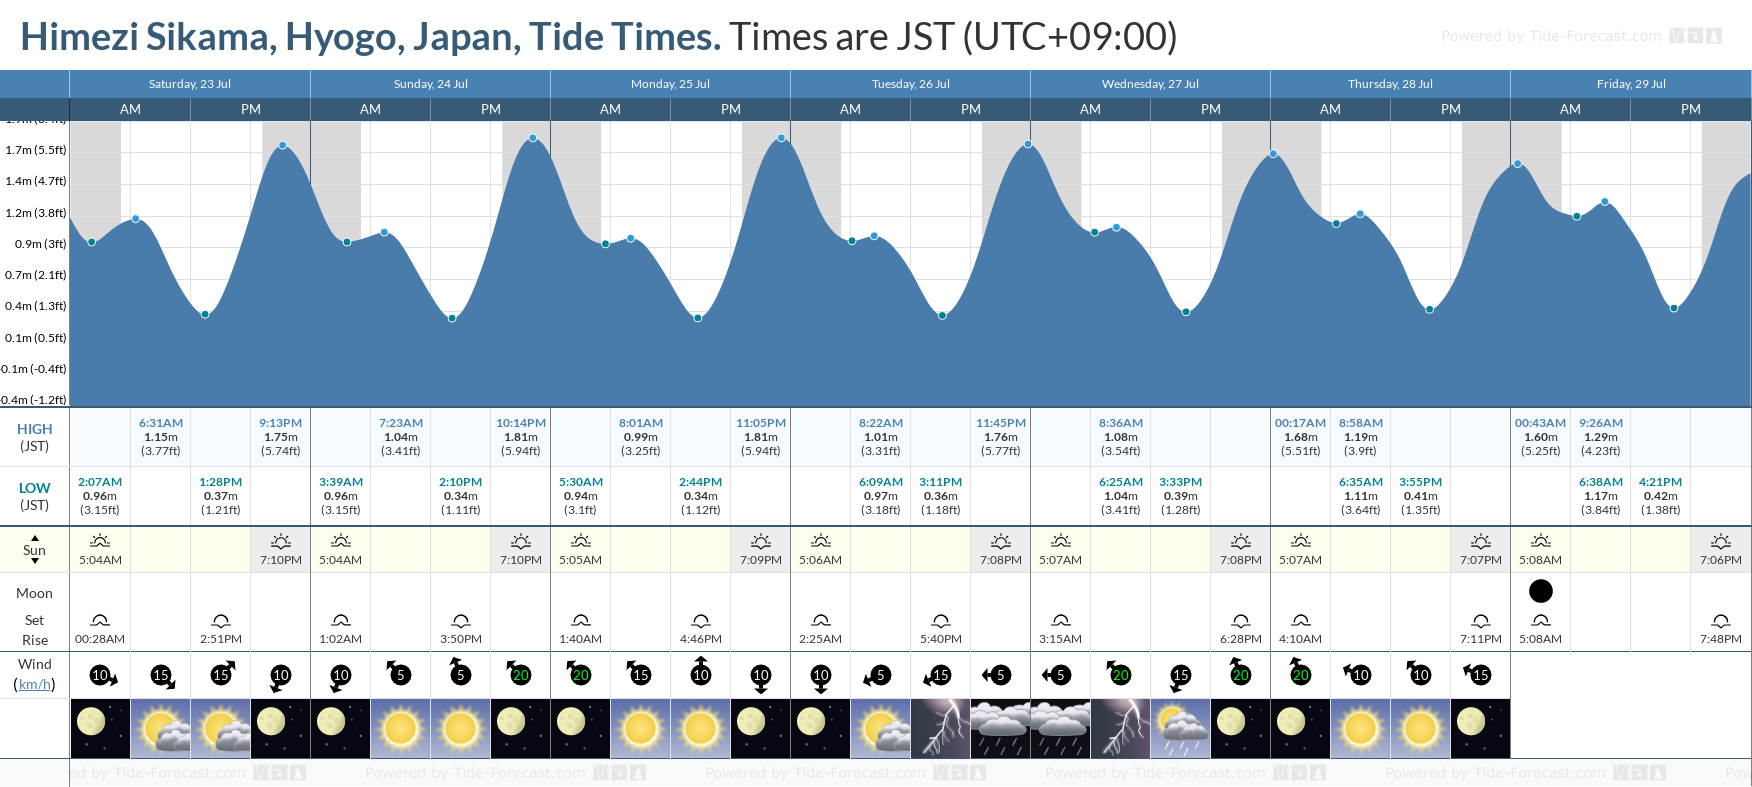 Himezi Sikama, Hyogo, Japan Tide Chart including high and low tide tide times for the next 7 days